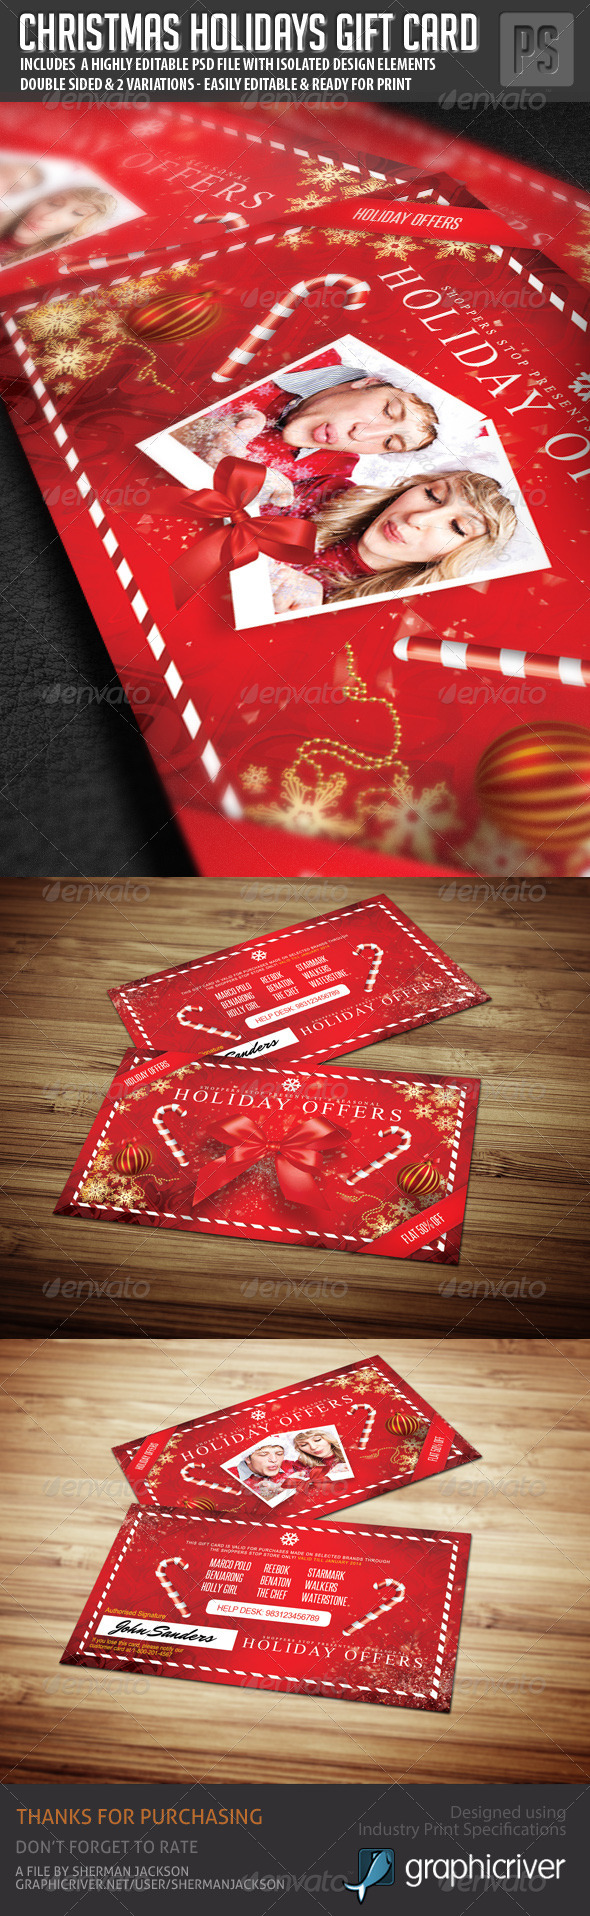 GraphicRiver Christmas Holidays Gift Card Loyalty Card 6302012